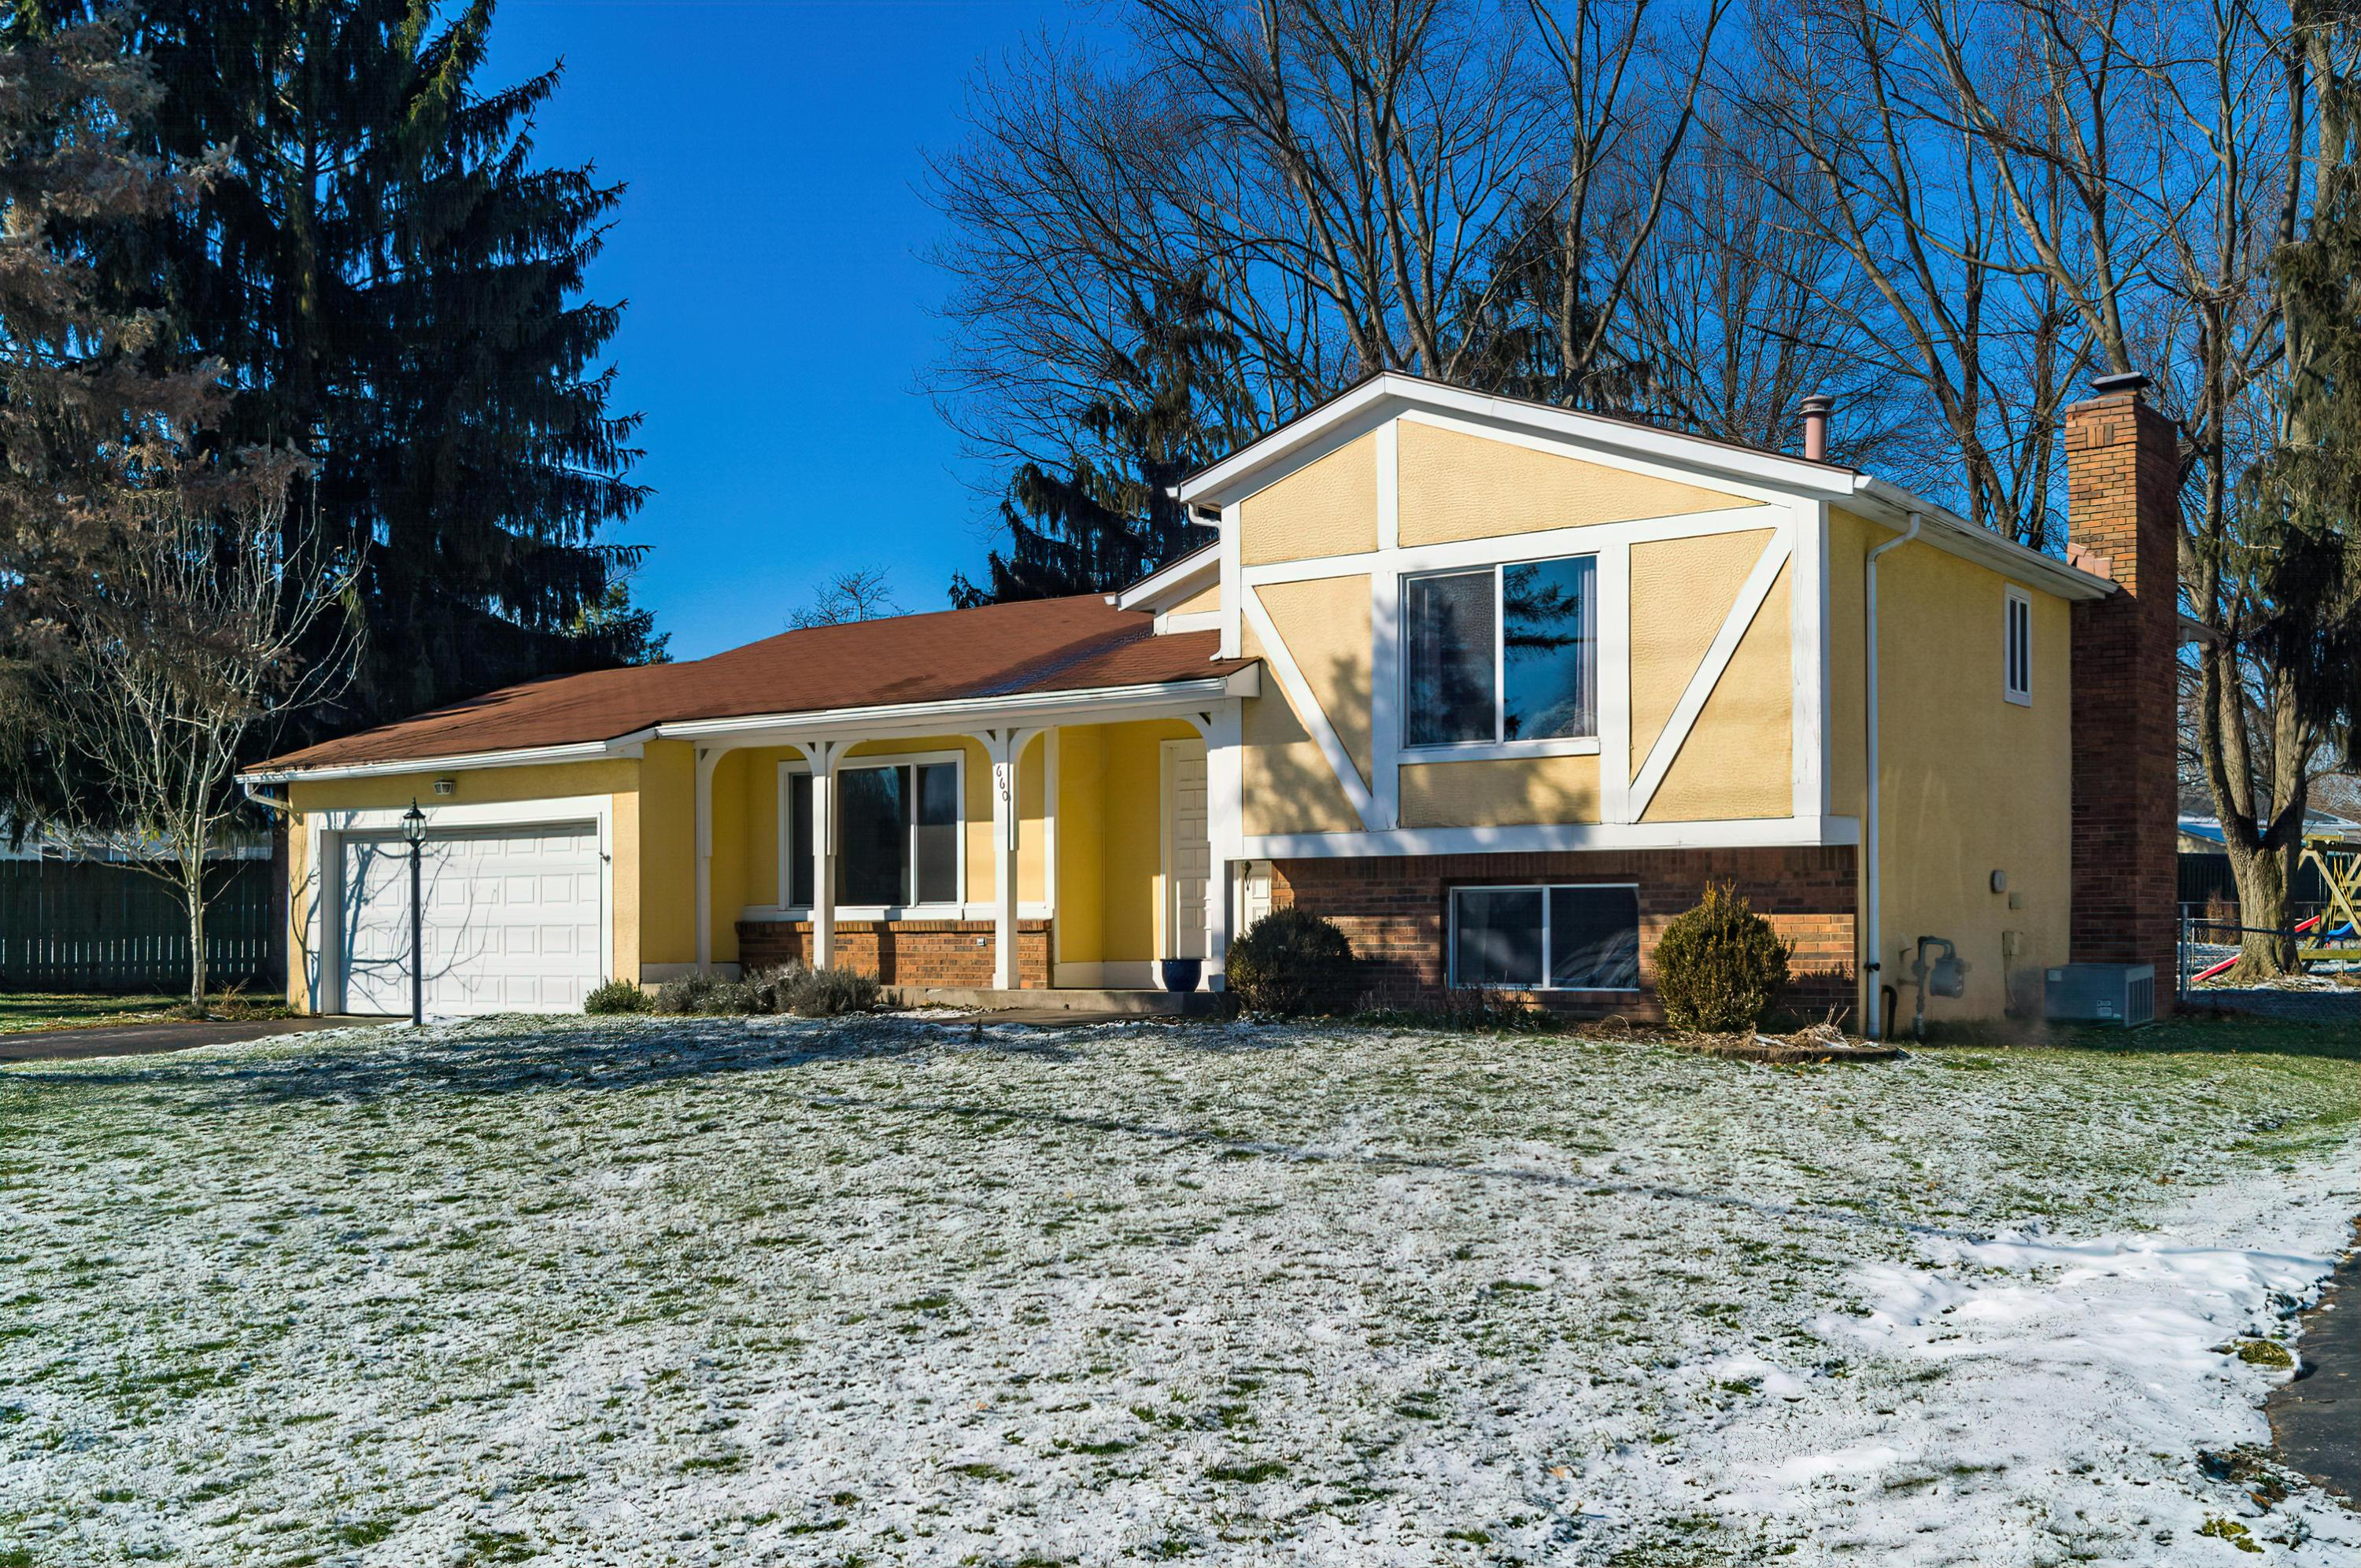 Photo of 660 Clark State Road, Gahanna, OH 43230